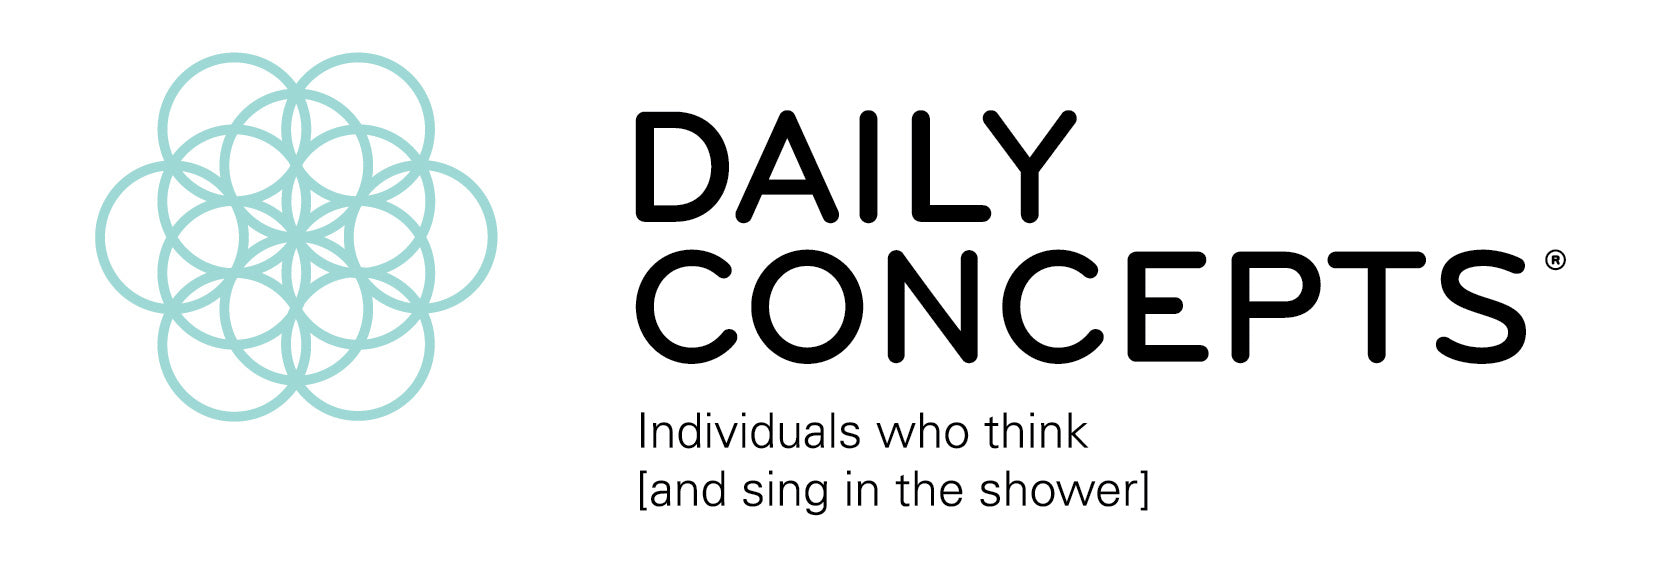 Daily Concepts, Individuals who think and sing in the Shower, cruelty free, vegan